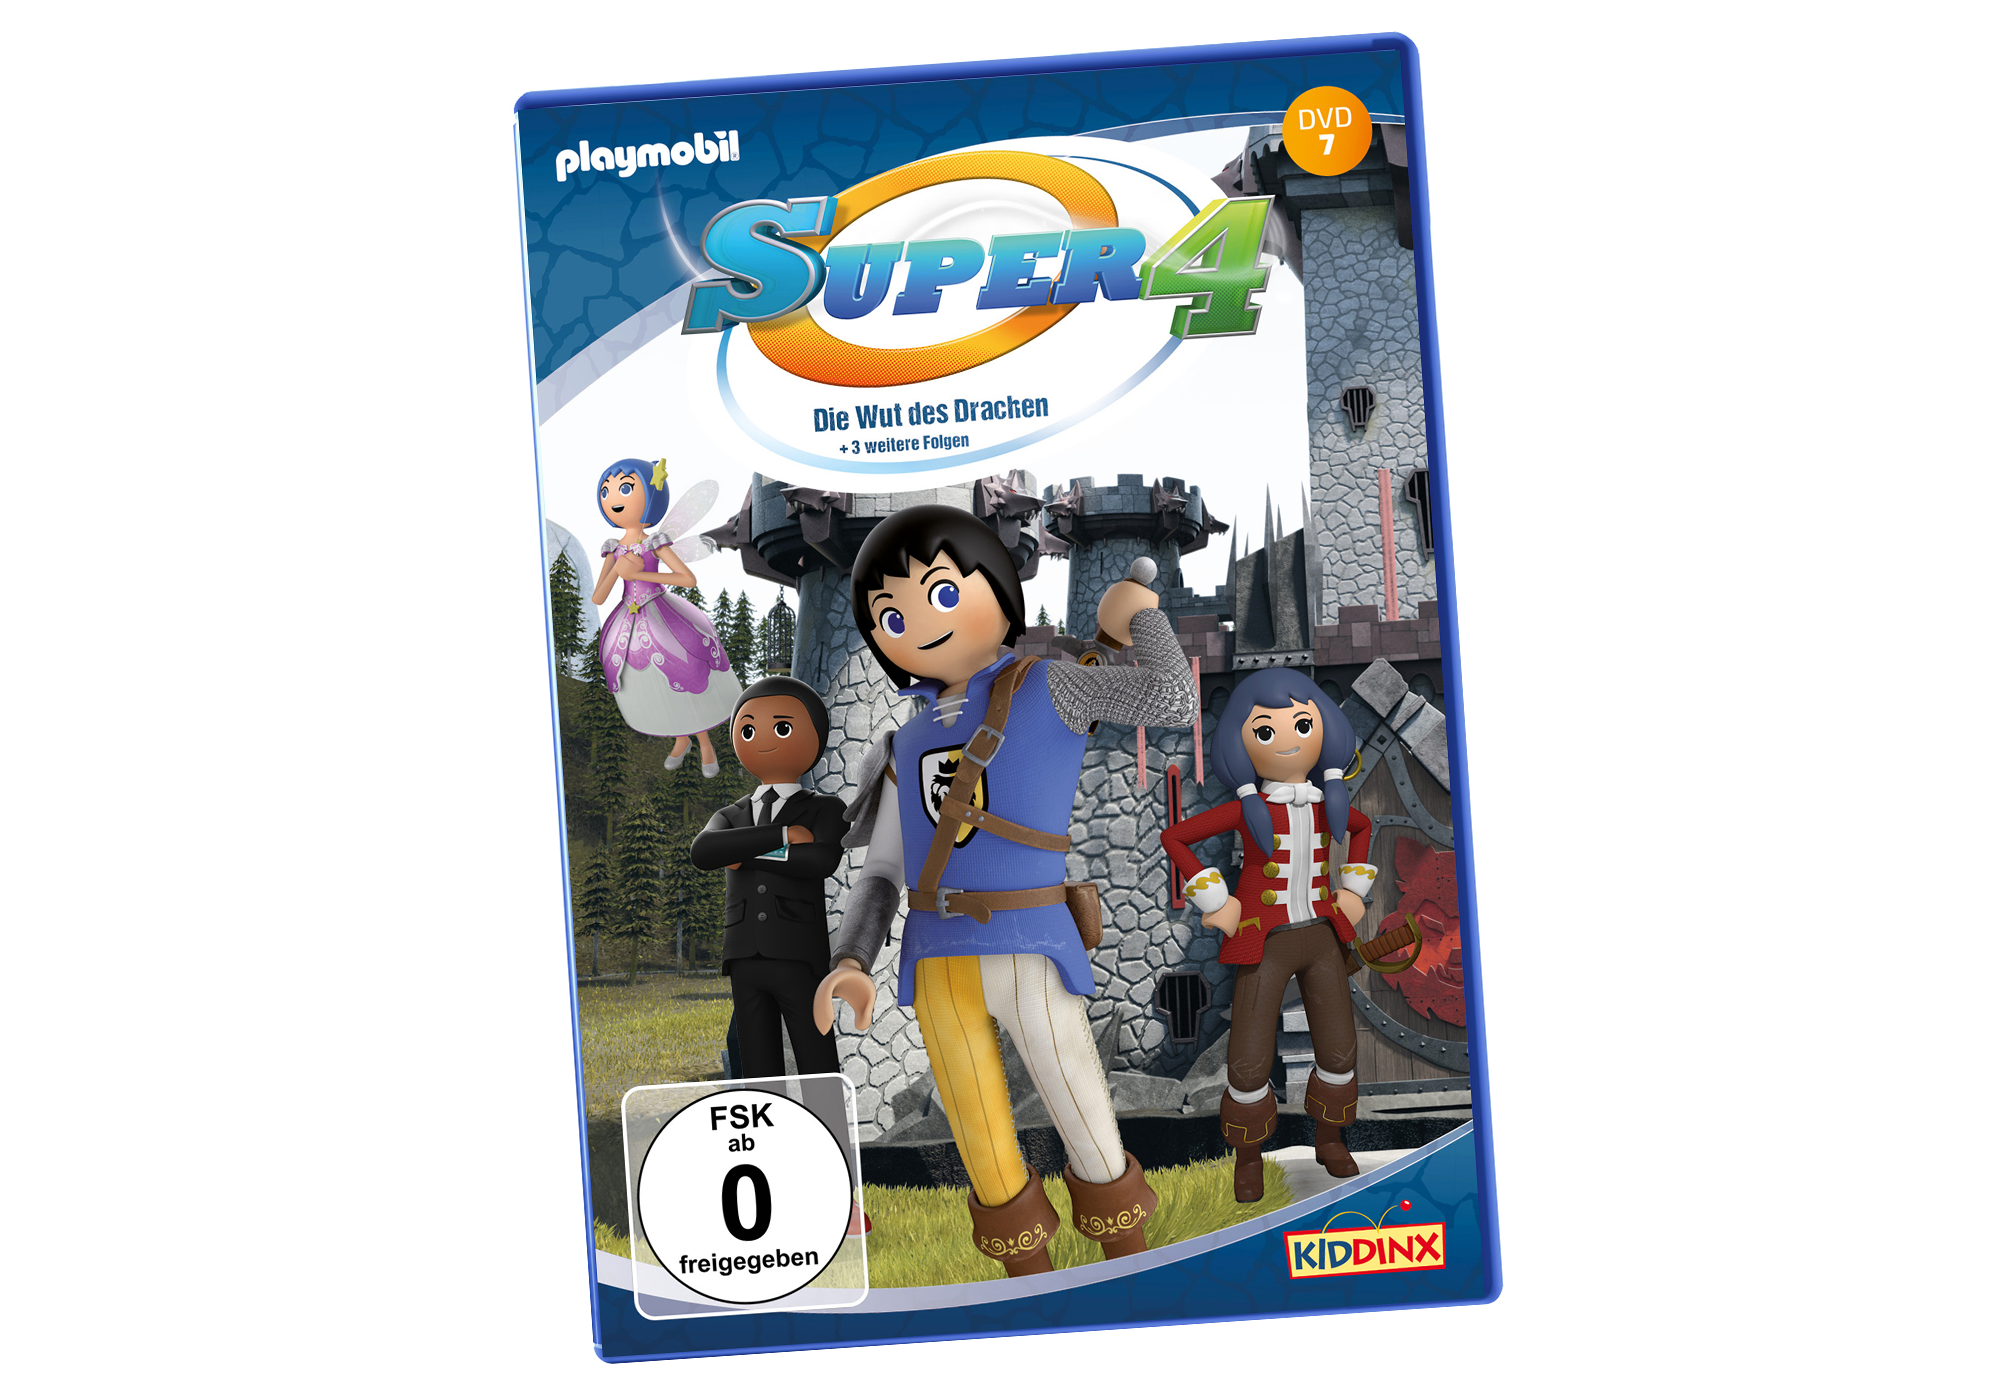 http://media.playmobil.com/i/playmobil/80019_product_detail